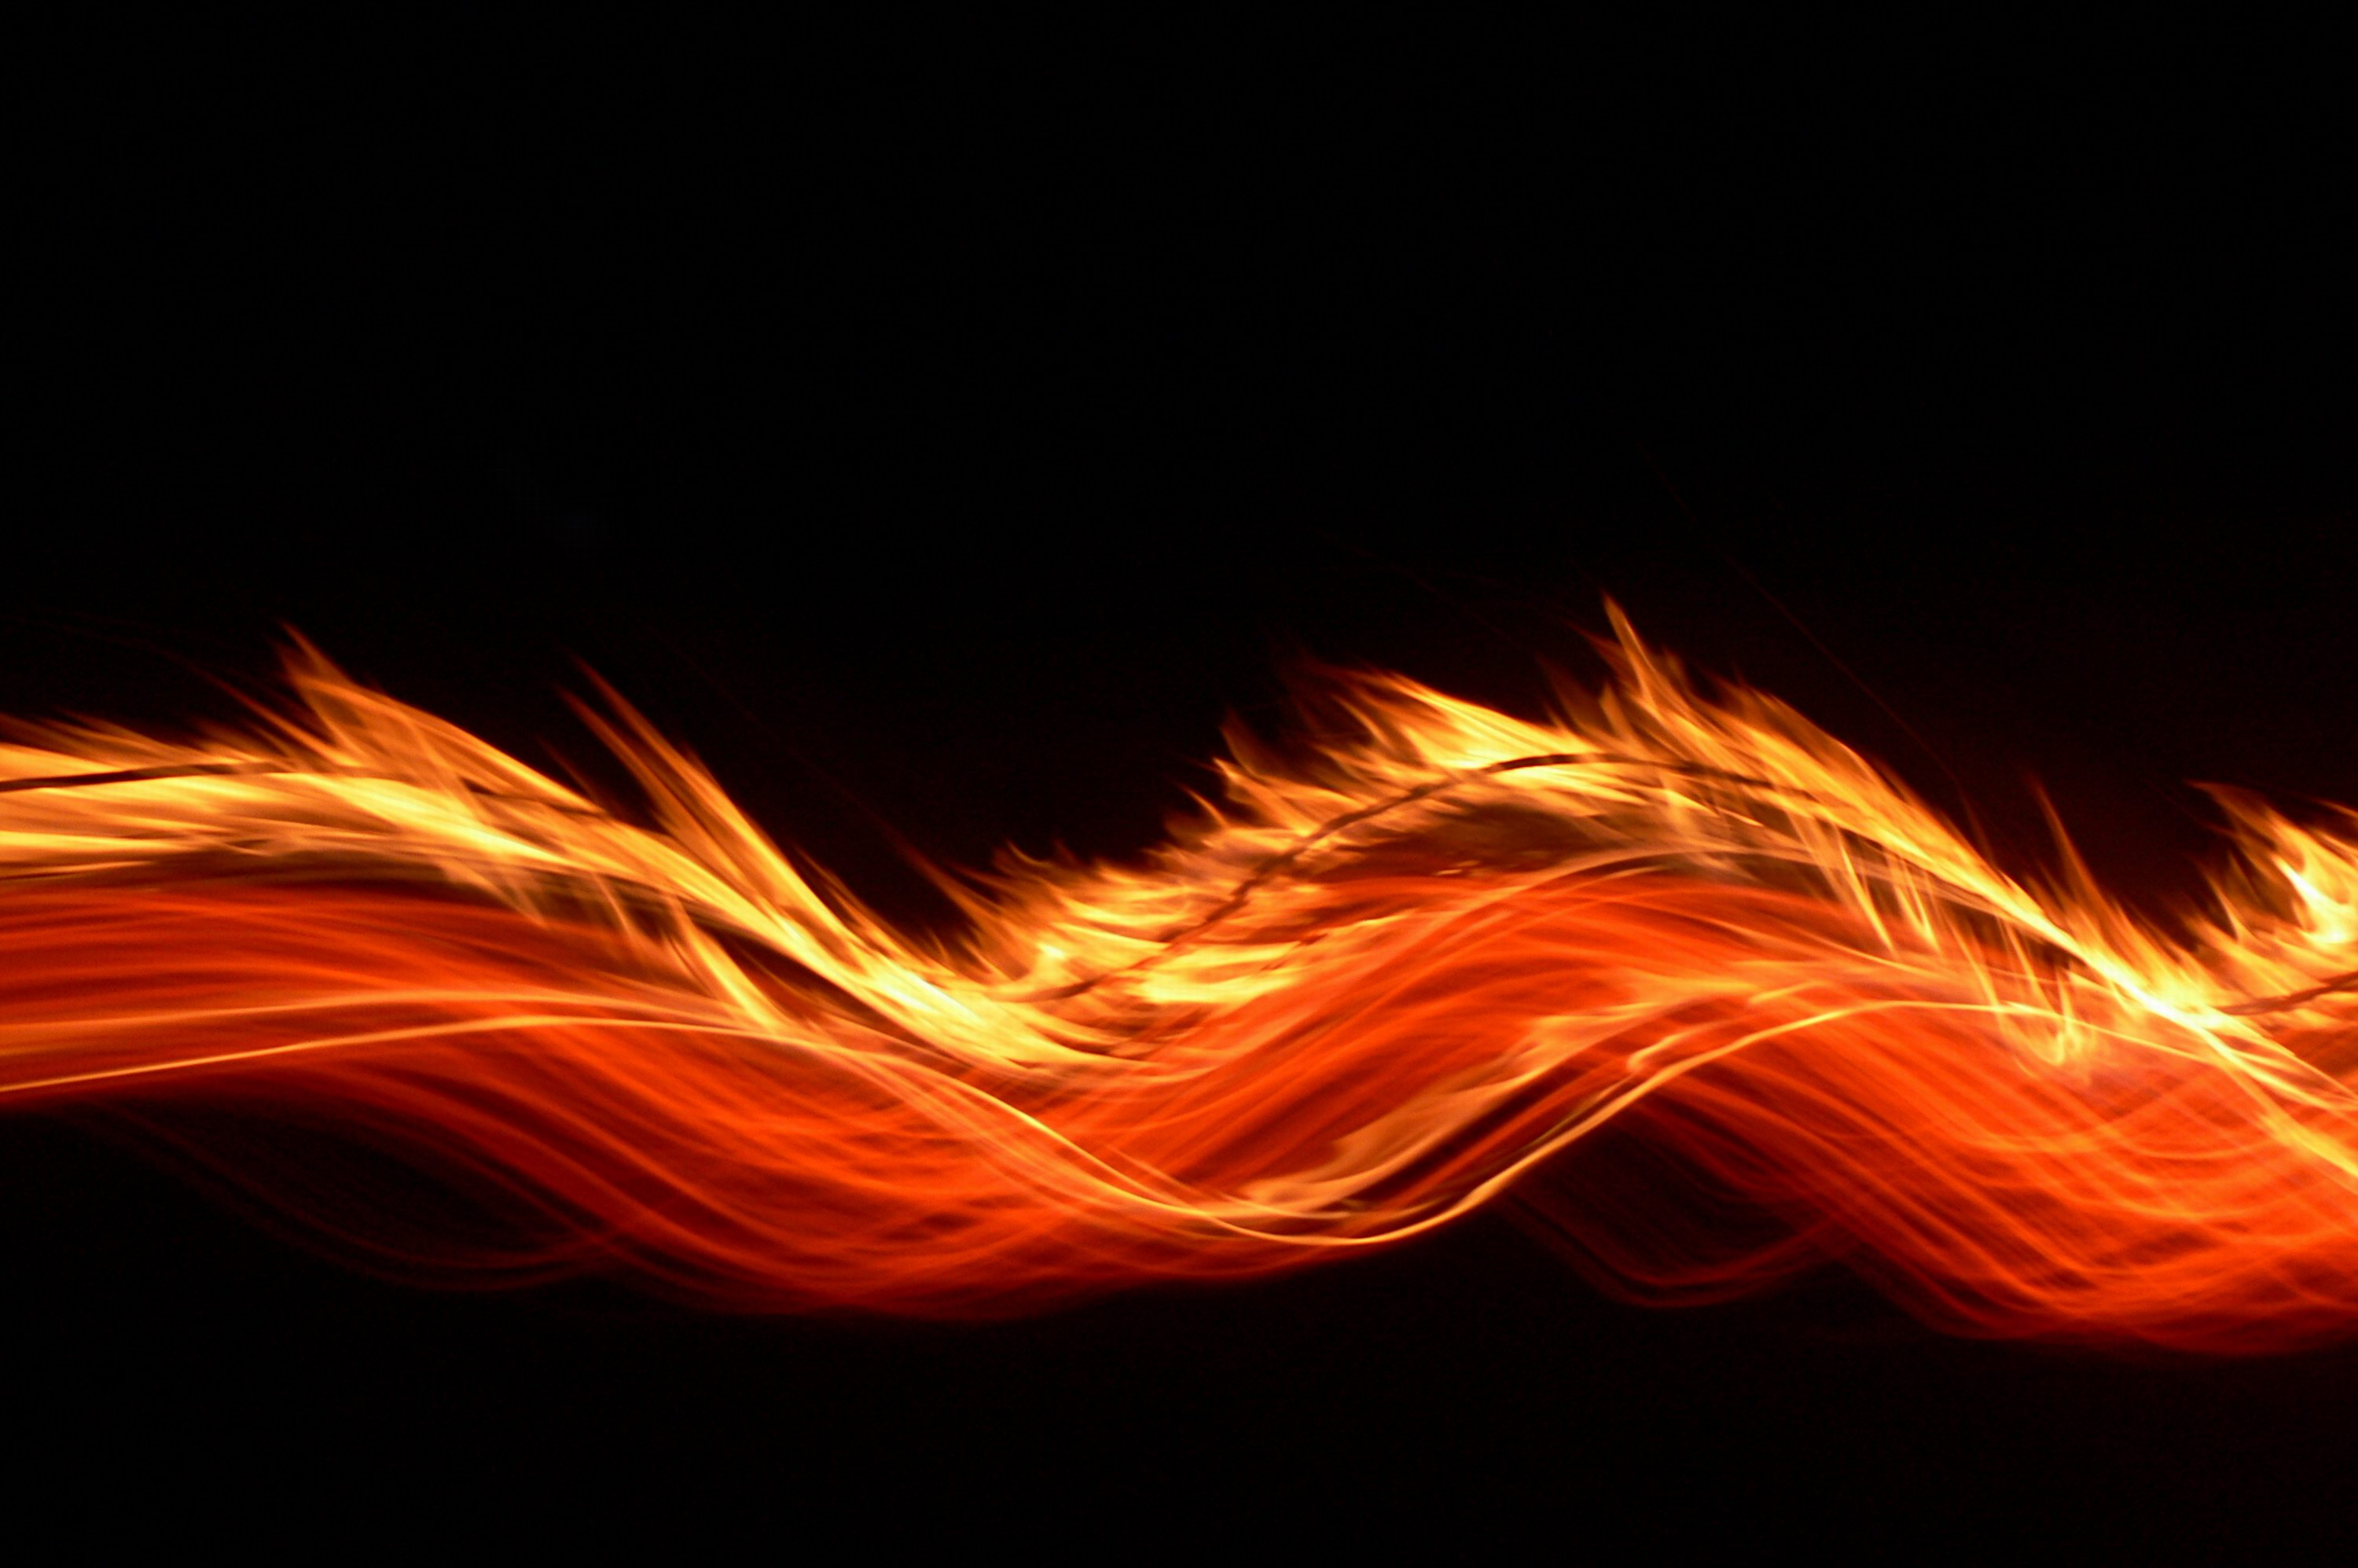 Fire Wallpaper Hd Abstract fire 3000x1995